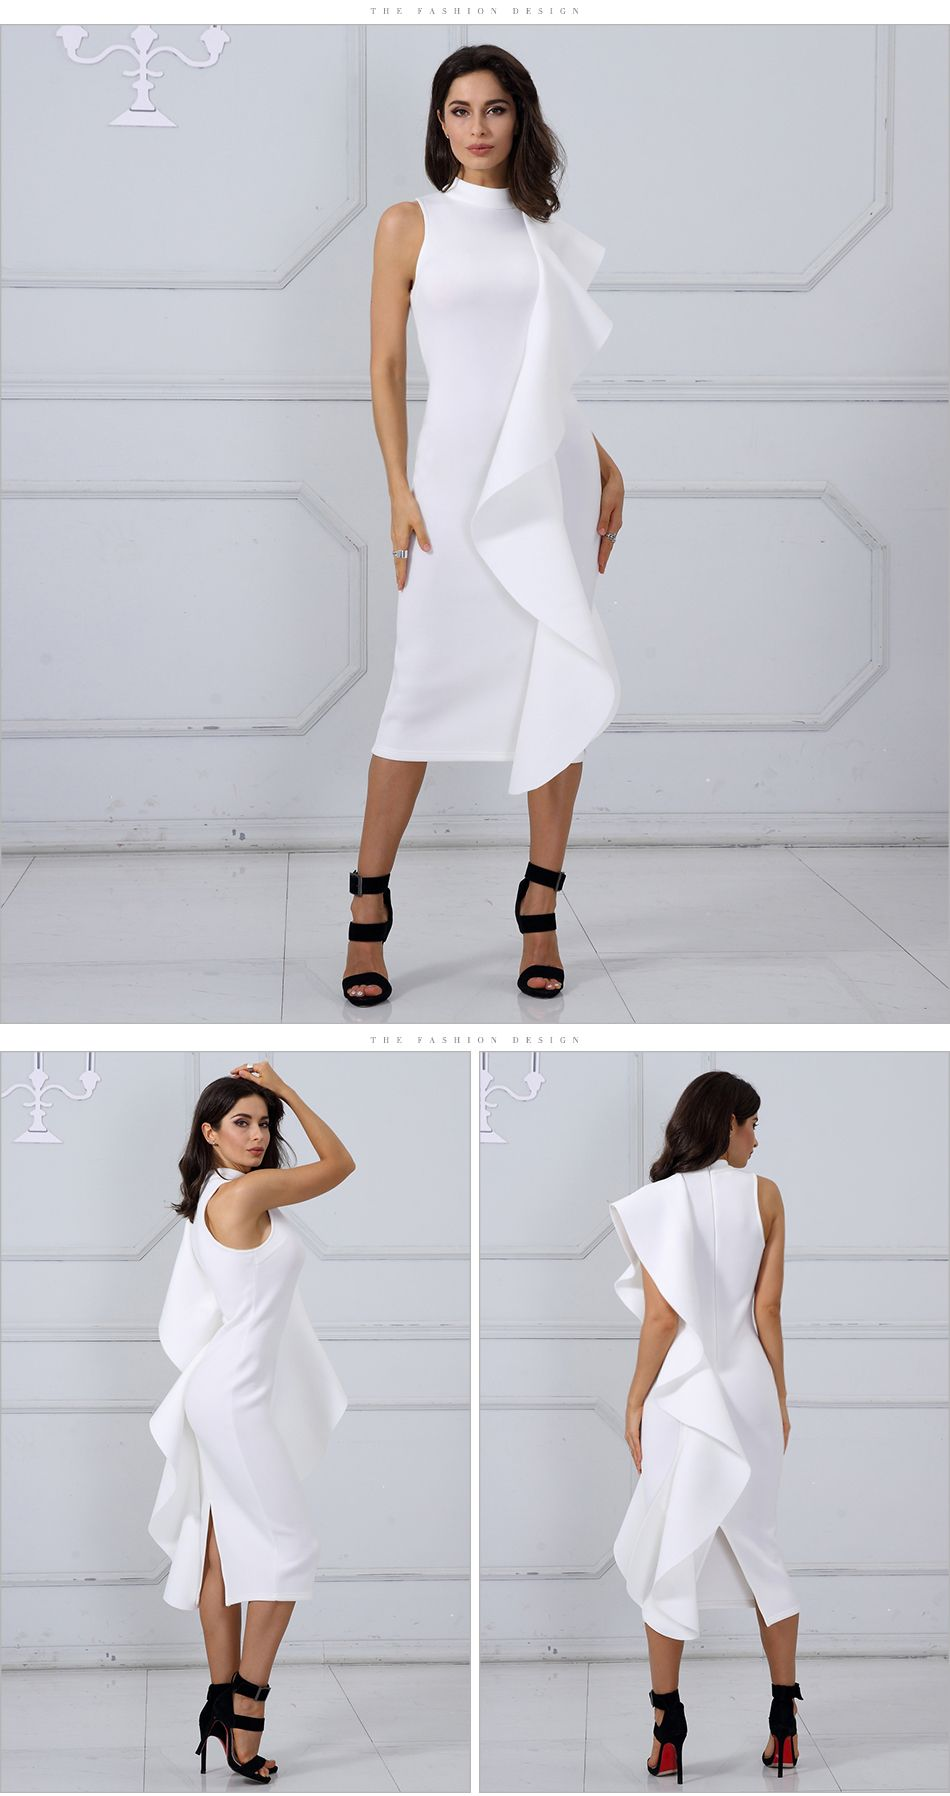 Adyce 2018 New Style Winter Dress Women Sexy White Sleeveless Patchwork Ruffles Bodycon Vestidos Celebrity Party Dress Clubwear is part of Party Clothes Casual - design drawing, etc   Welcome your trial order to check our quality  We're always looking forward to providing you the best purchasing experience and developing winwin, longterm and friendly relations of cooperation with you   Thank you very much !